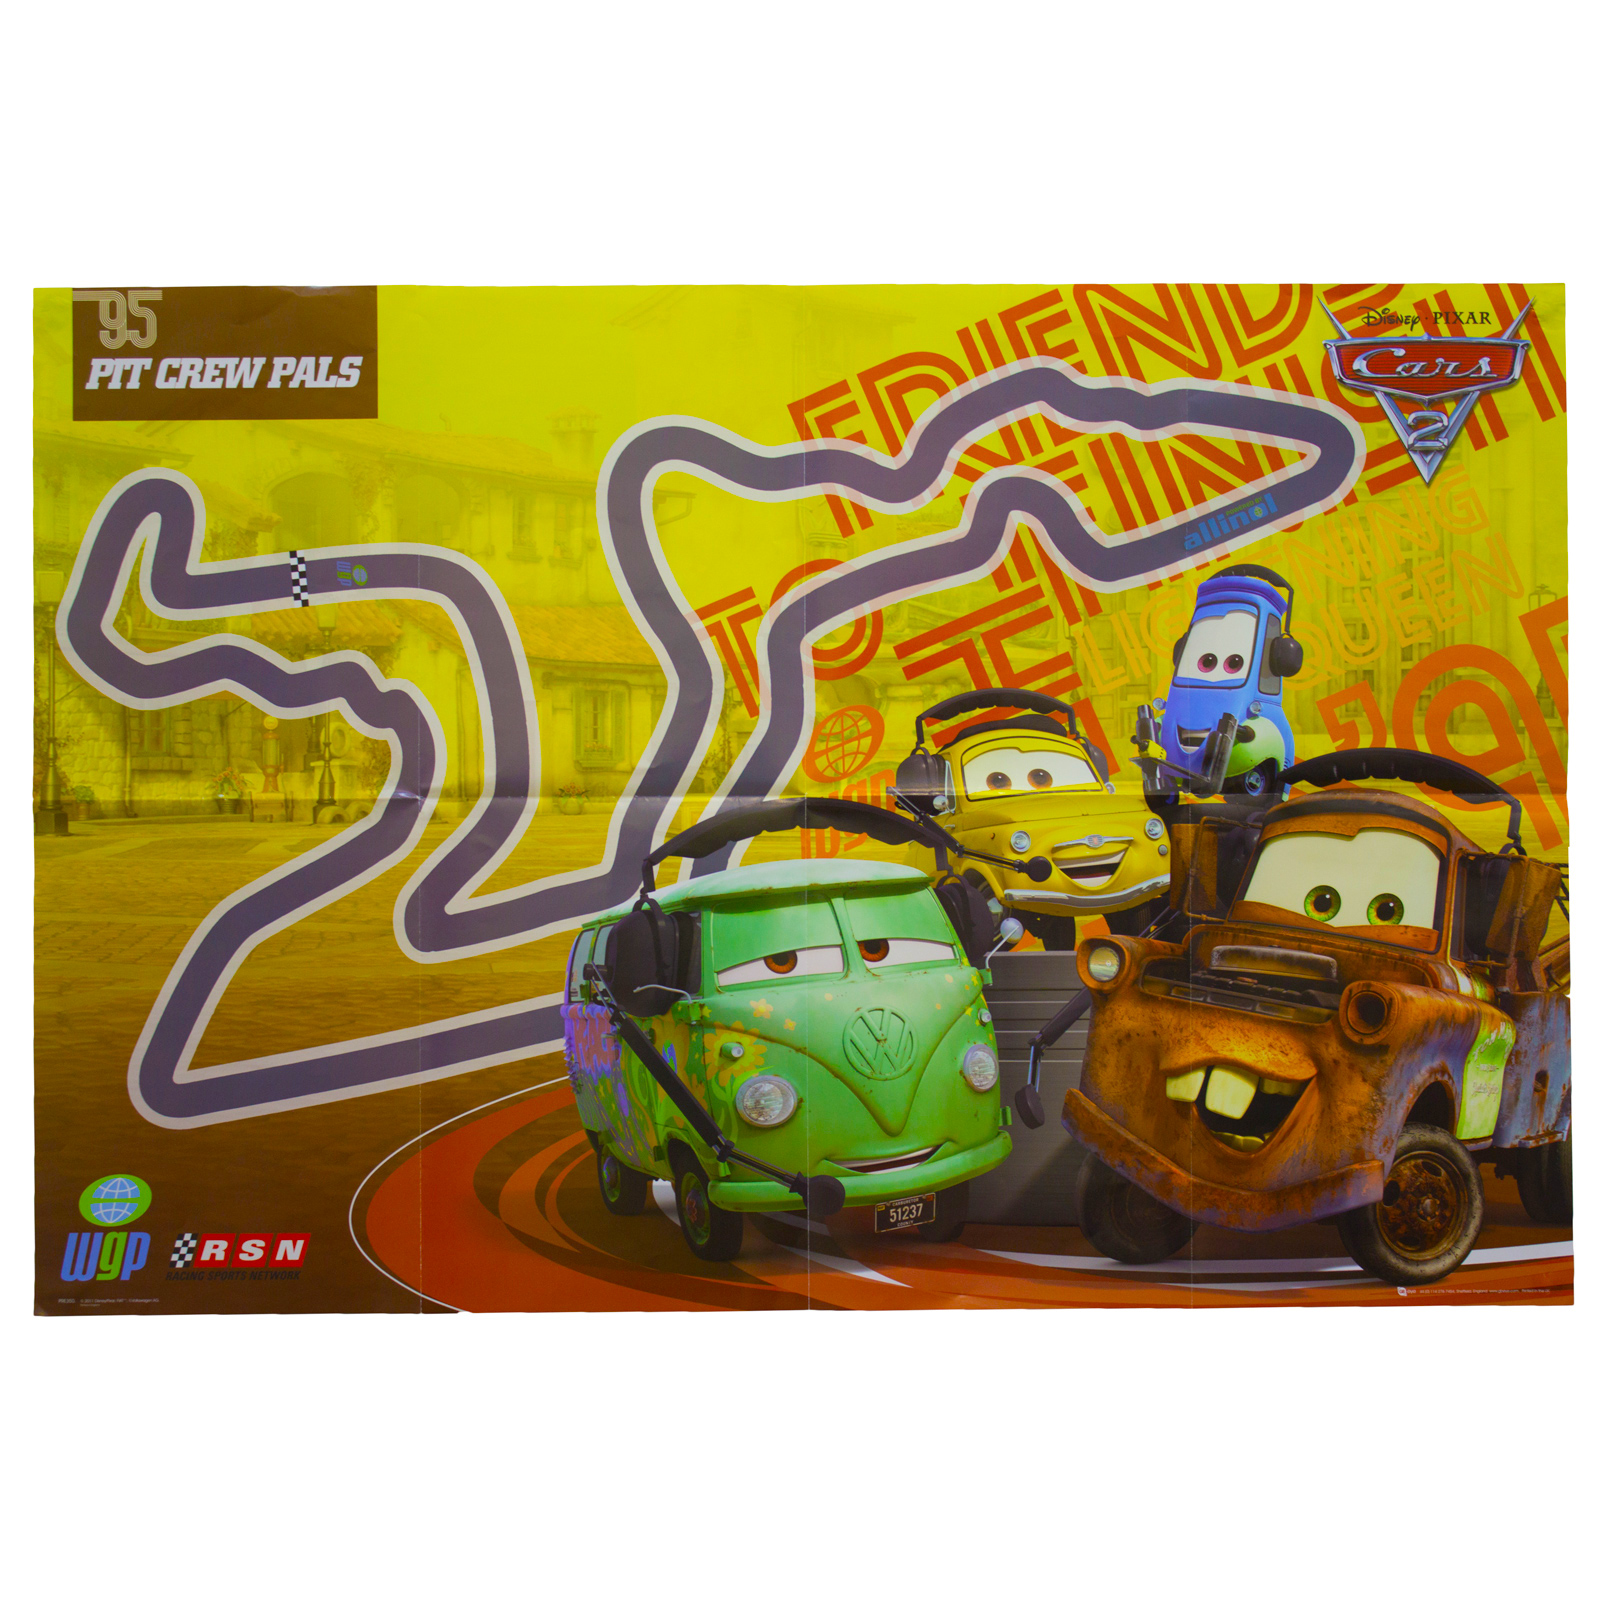 Disney Cars 2 Poster Kids Wall Art Pack Film Characters Racing Pit ...